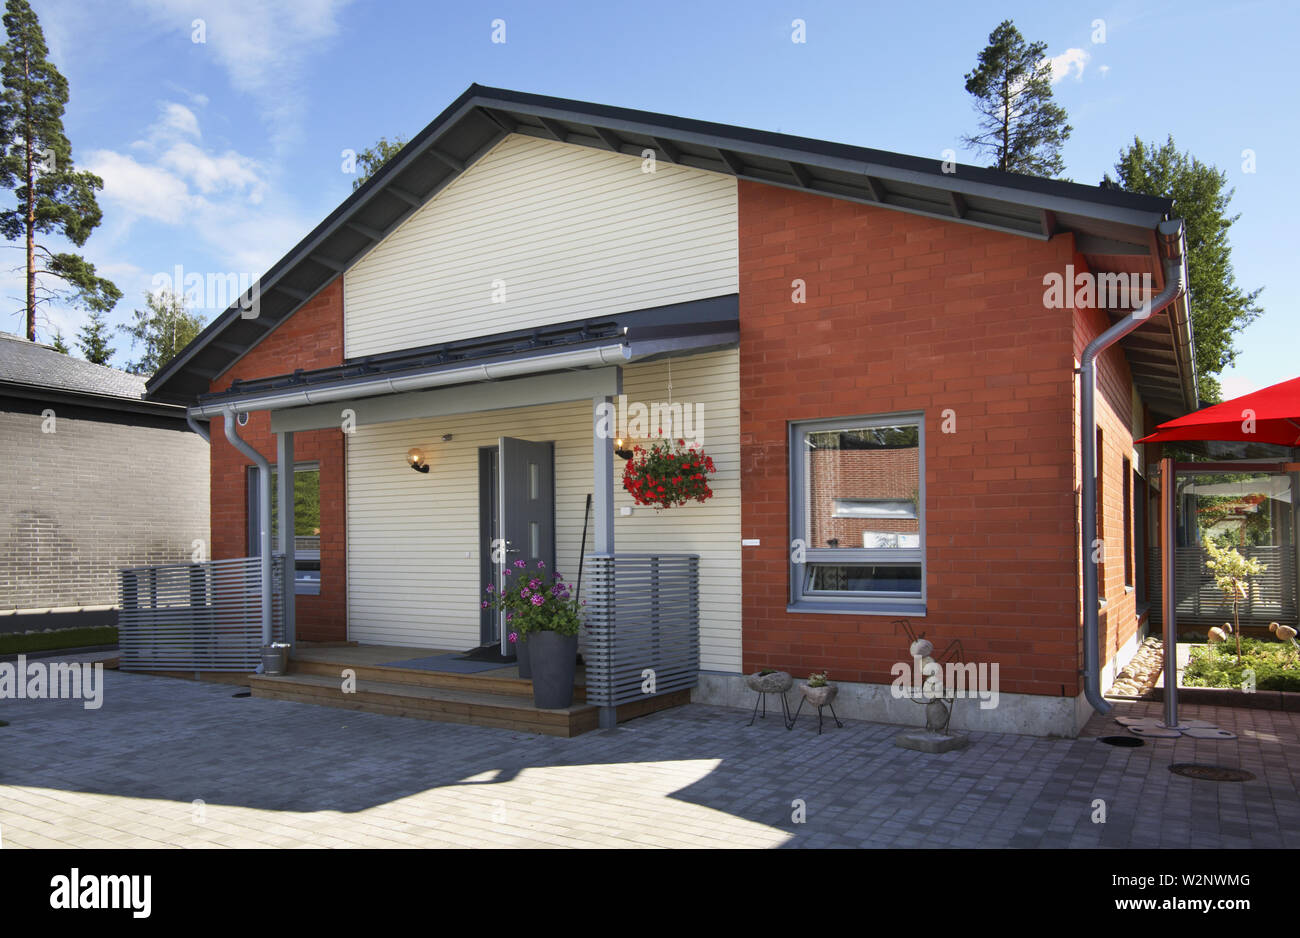 House 11 at exhibition Asuntomessut 2012 in Tampere. Finland - Stock Image